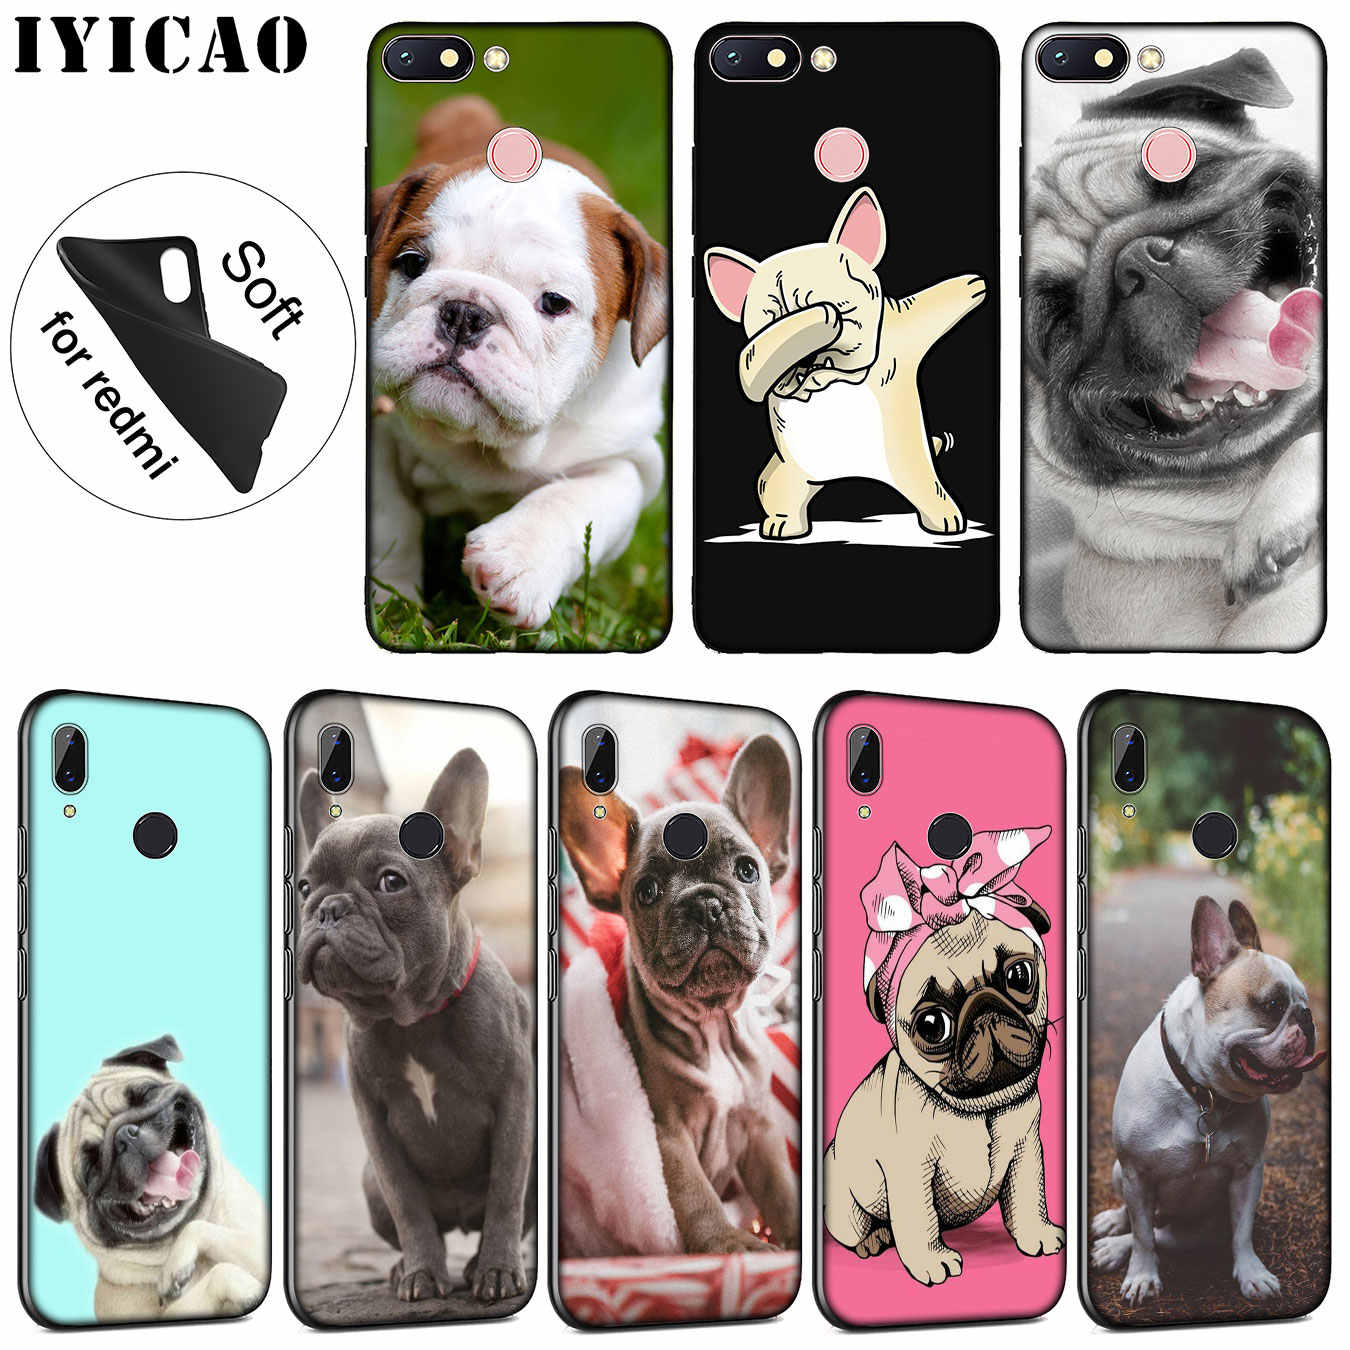 Iyicao Bahasa Perancis Bulldog Anjing Lembut Silicone Ponsel Case untuk Xiaomi Redmi K20 8A 7A 6A 5A S2 4X 4A Pergi note 8 7 5 Plus 6 Pro Cover